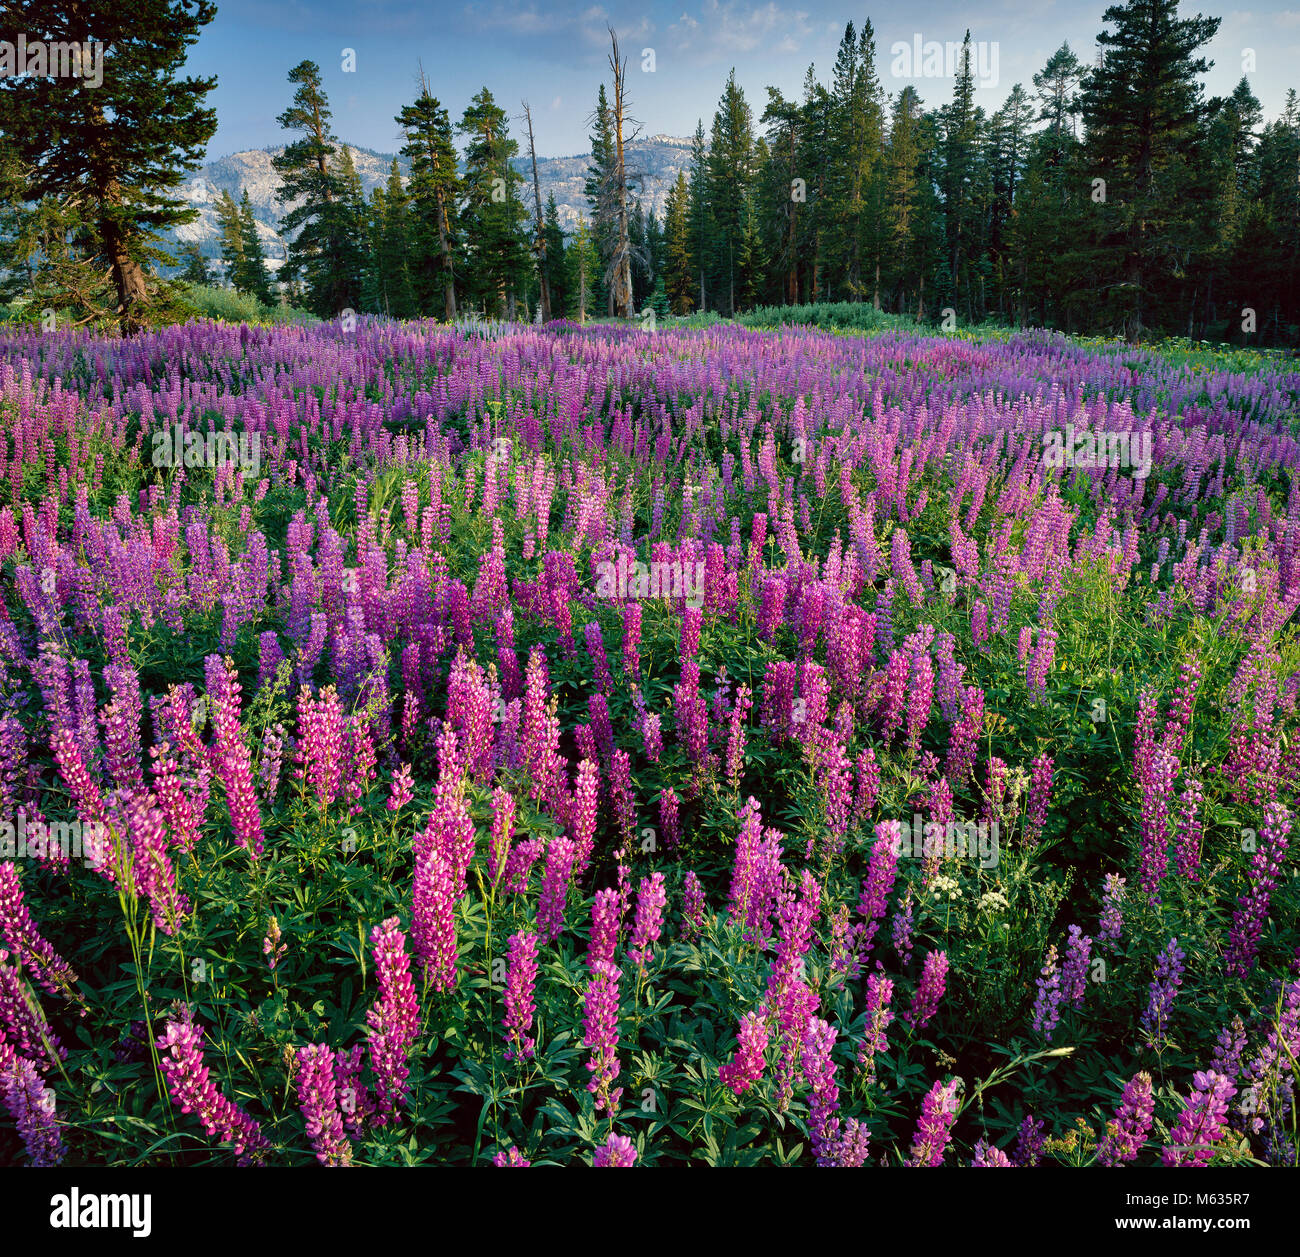 Lupine, Pferd Weide, Emigrant Wilderness, Stanislaus National Forest, Sierra Nevada, Kalifornien Stockbild